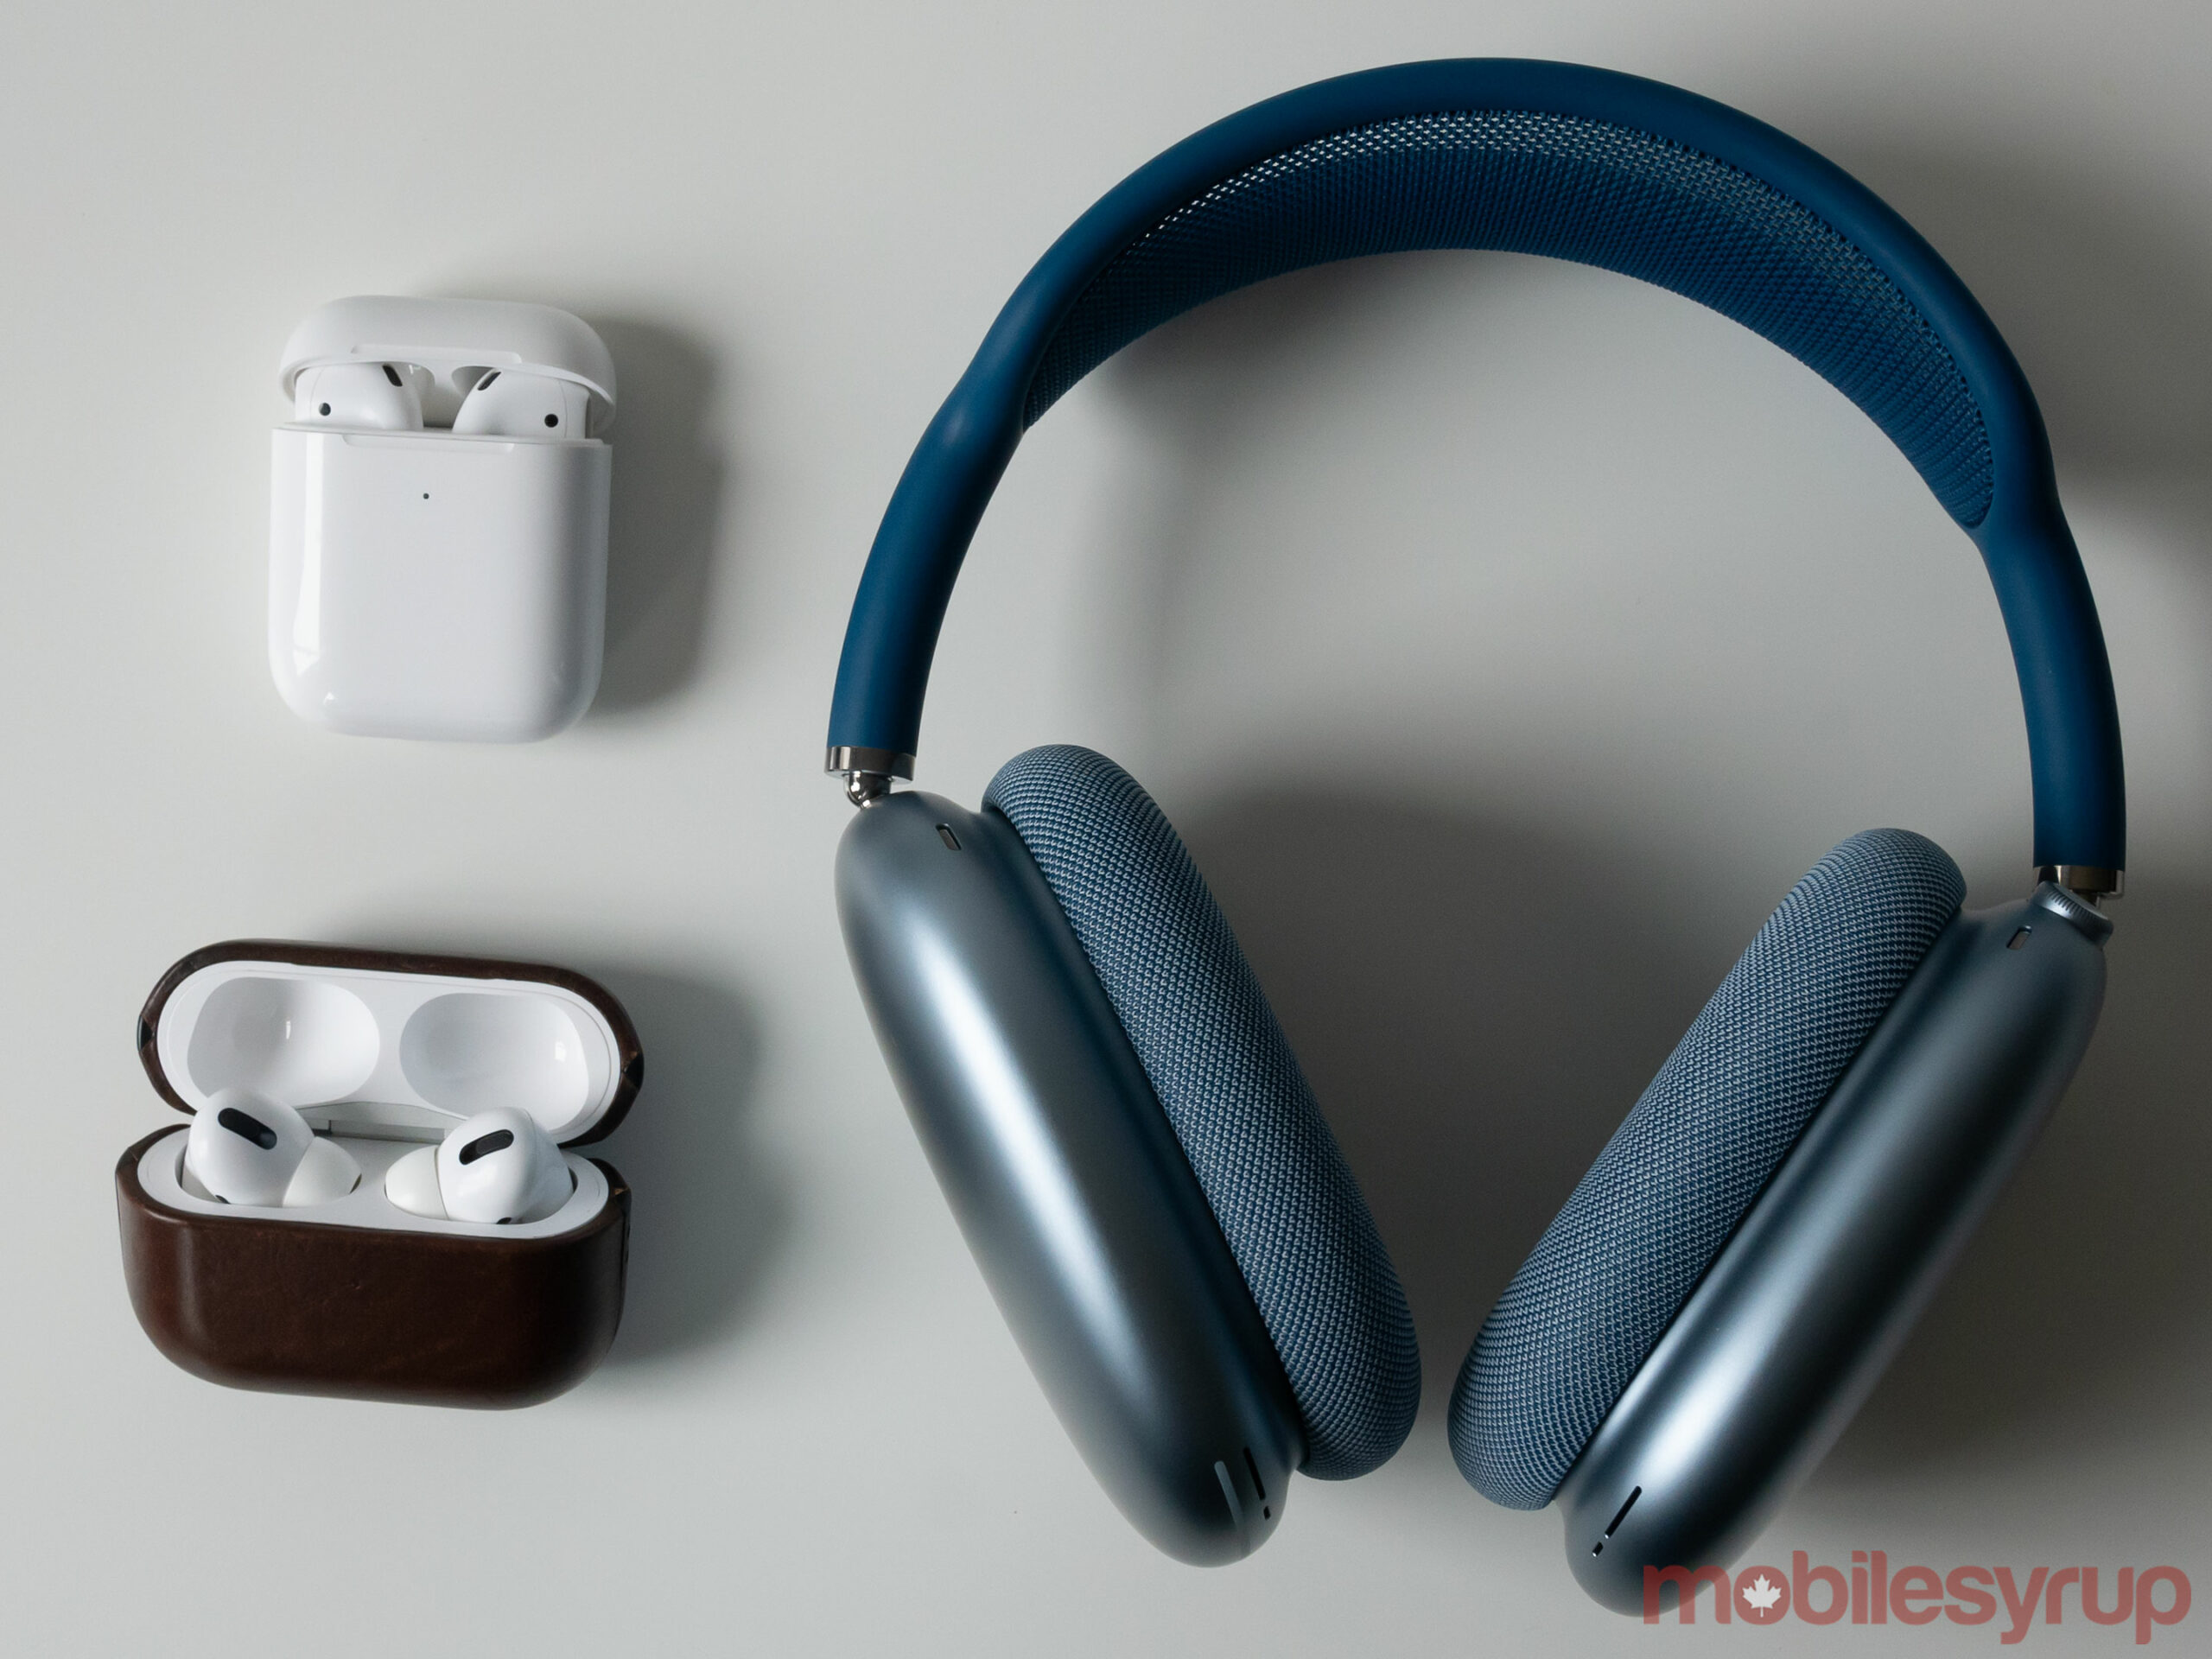 AirPods, AirPods Pro and AirPods Max